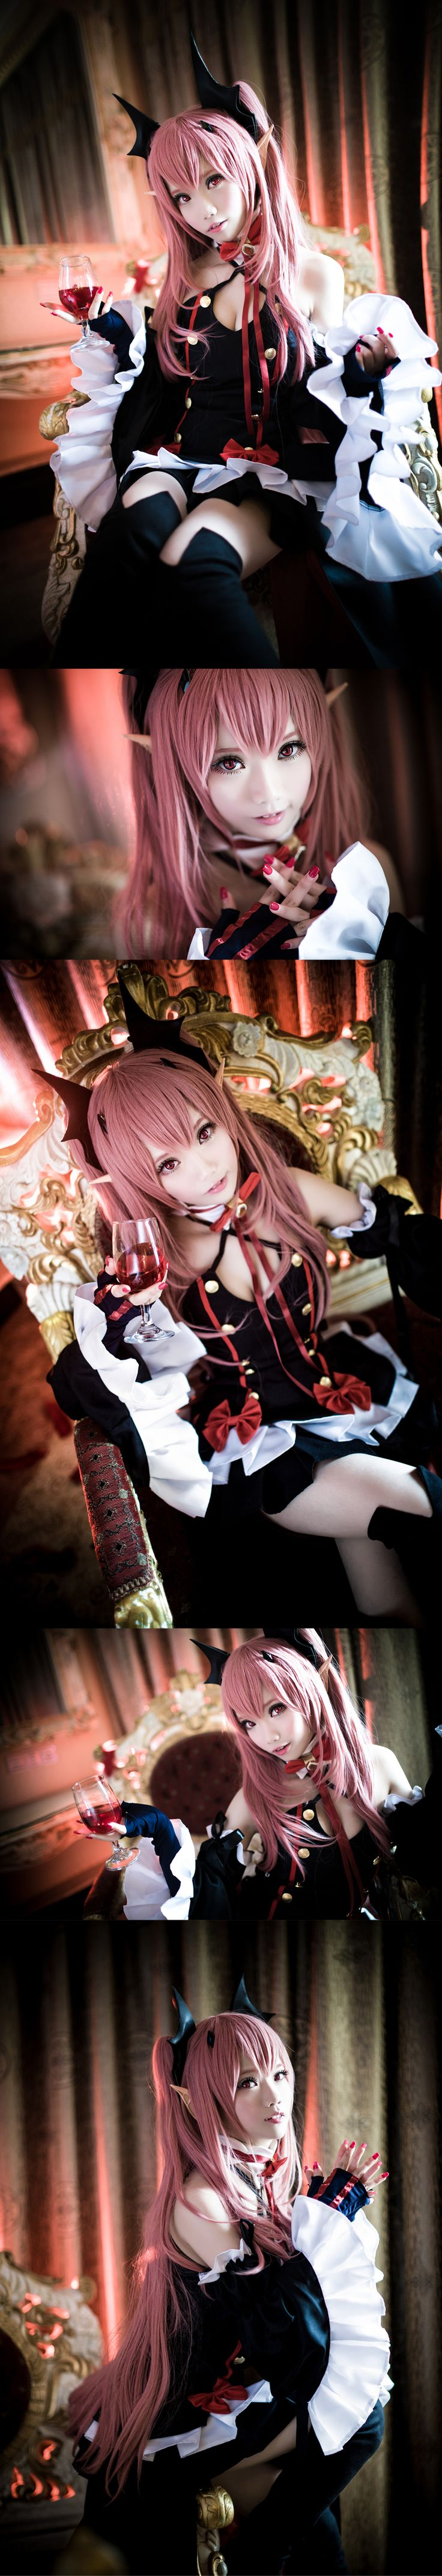 Seraph of the End,Anime Cosplay,Anime,аниме,Owari no Seraph